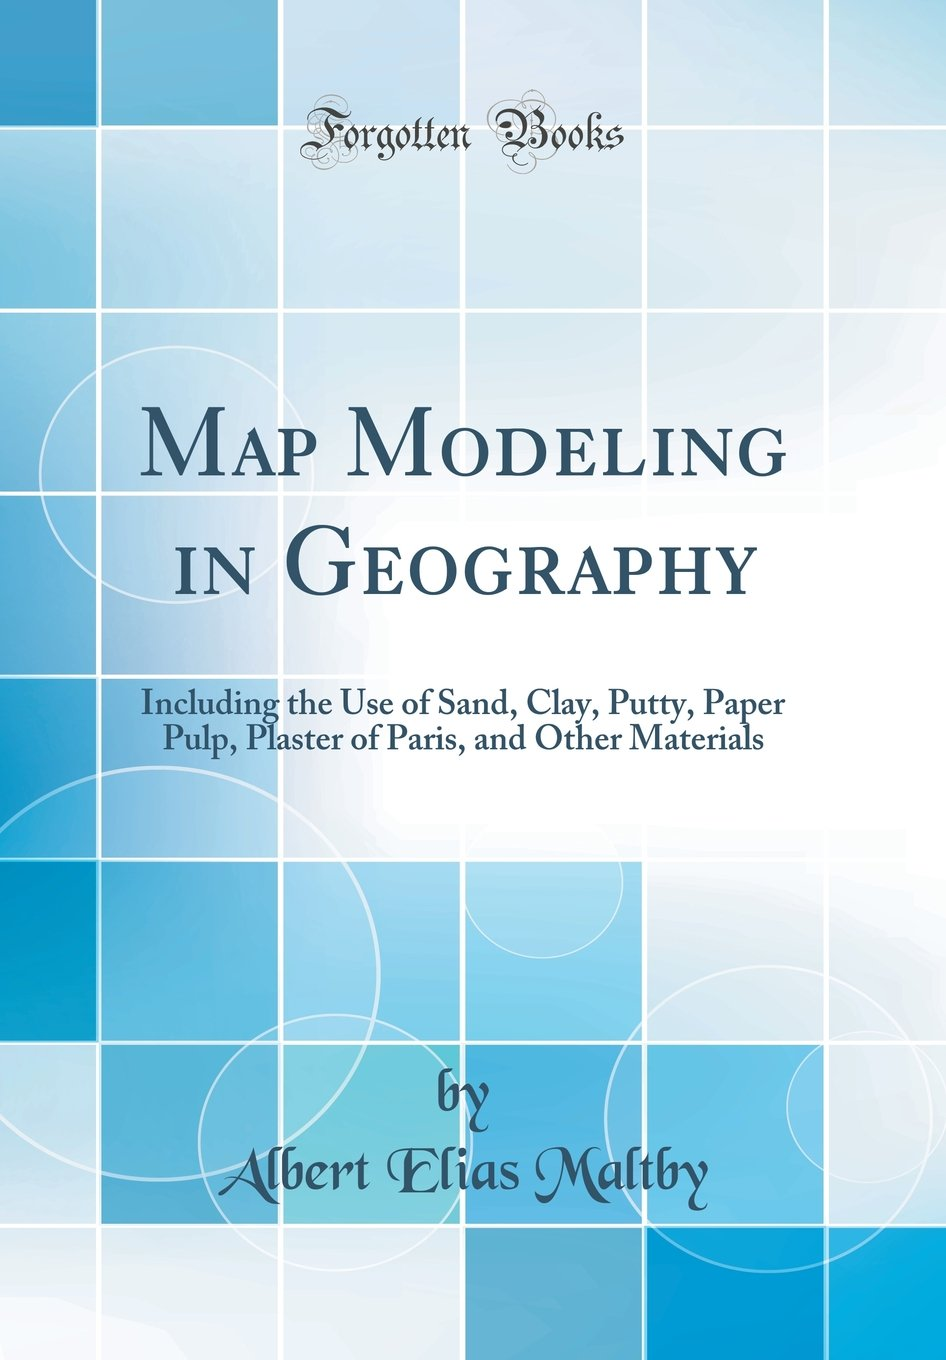 Map Modeling in Geography: Including the Use of Sand, Clay, Putty ...